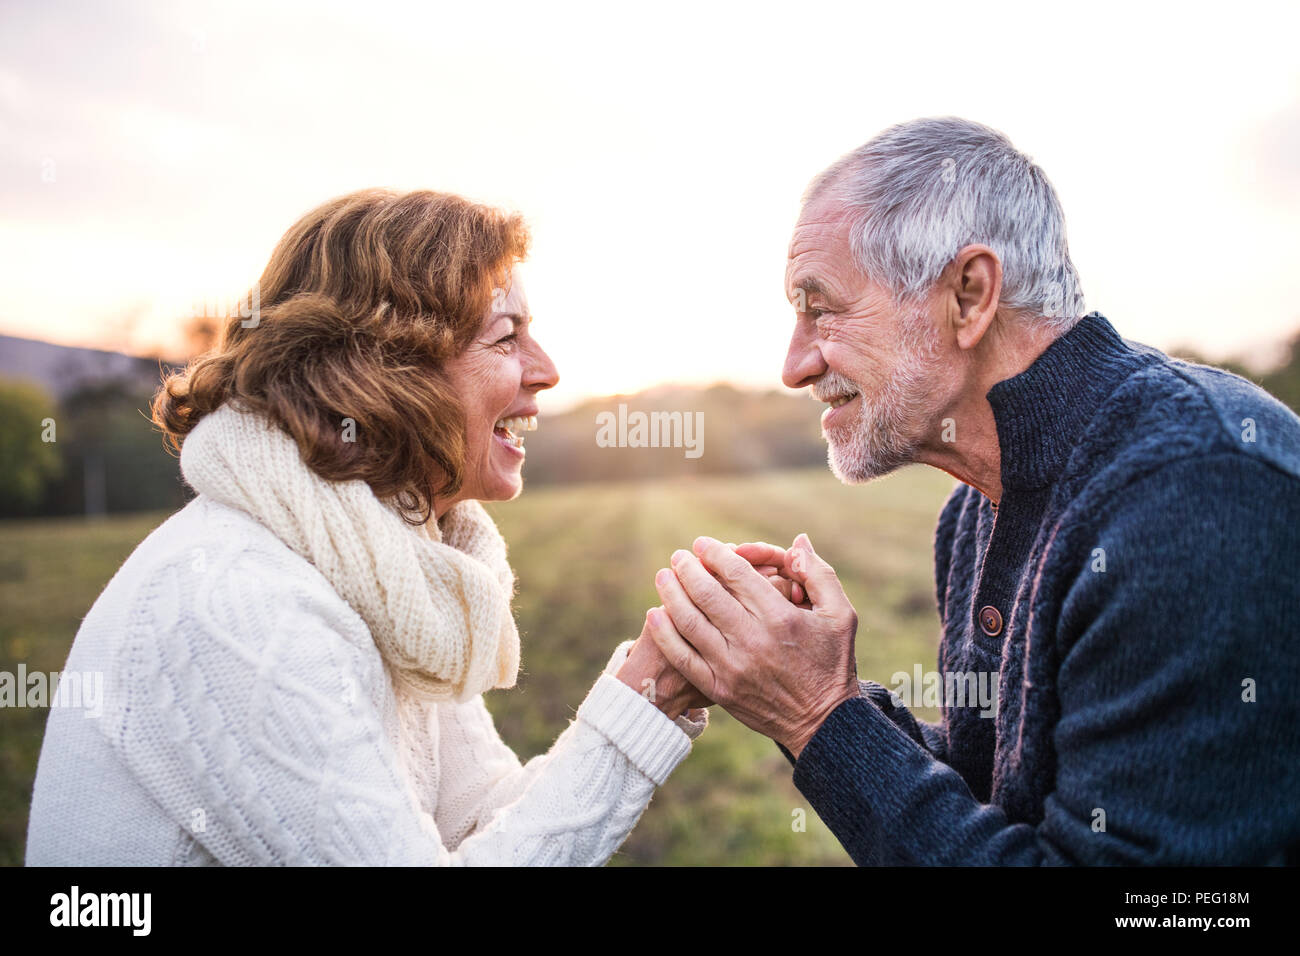 Senior couple looking at each other in an autumn nature, holding hands. - Stock Image